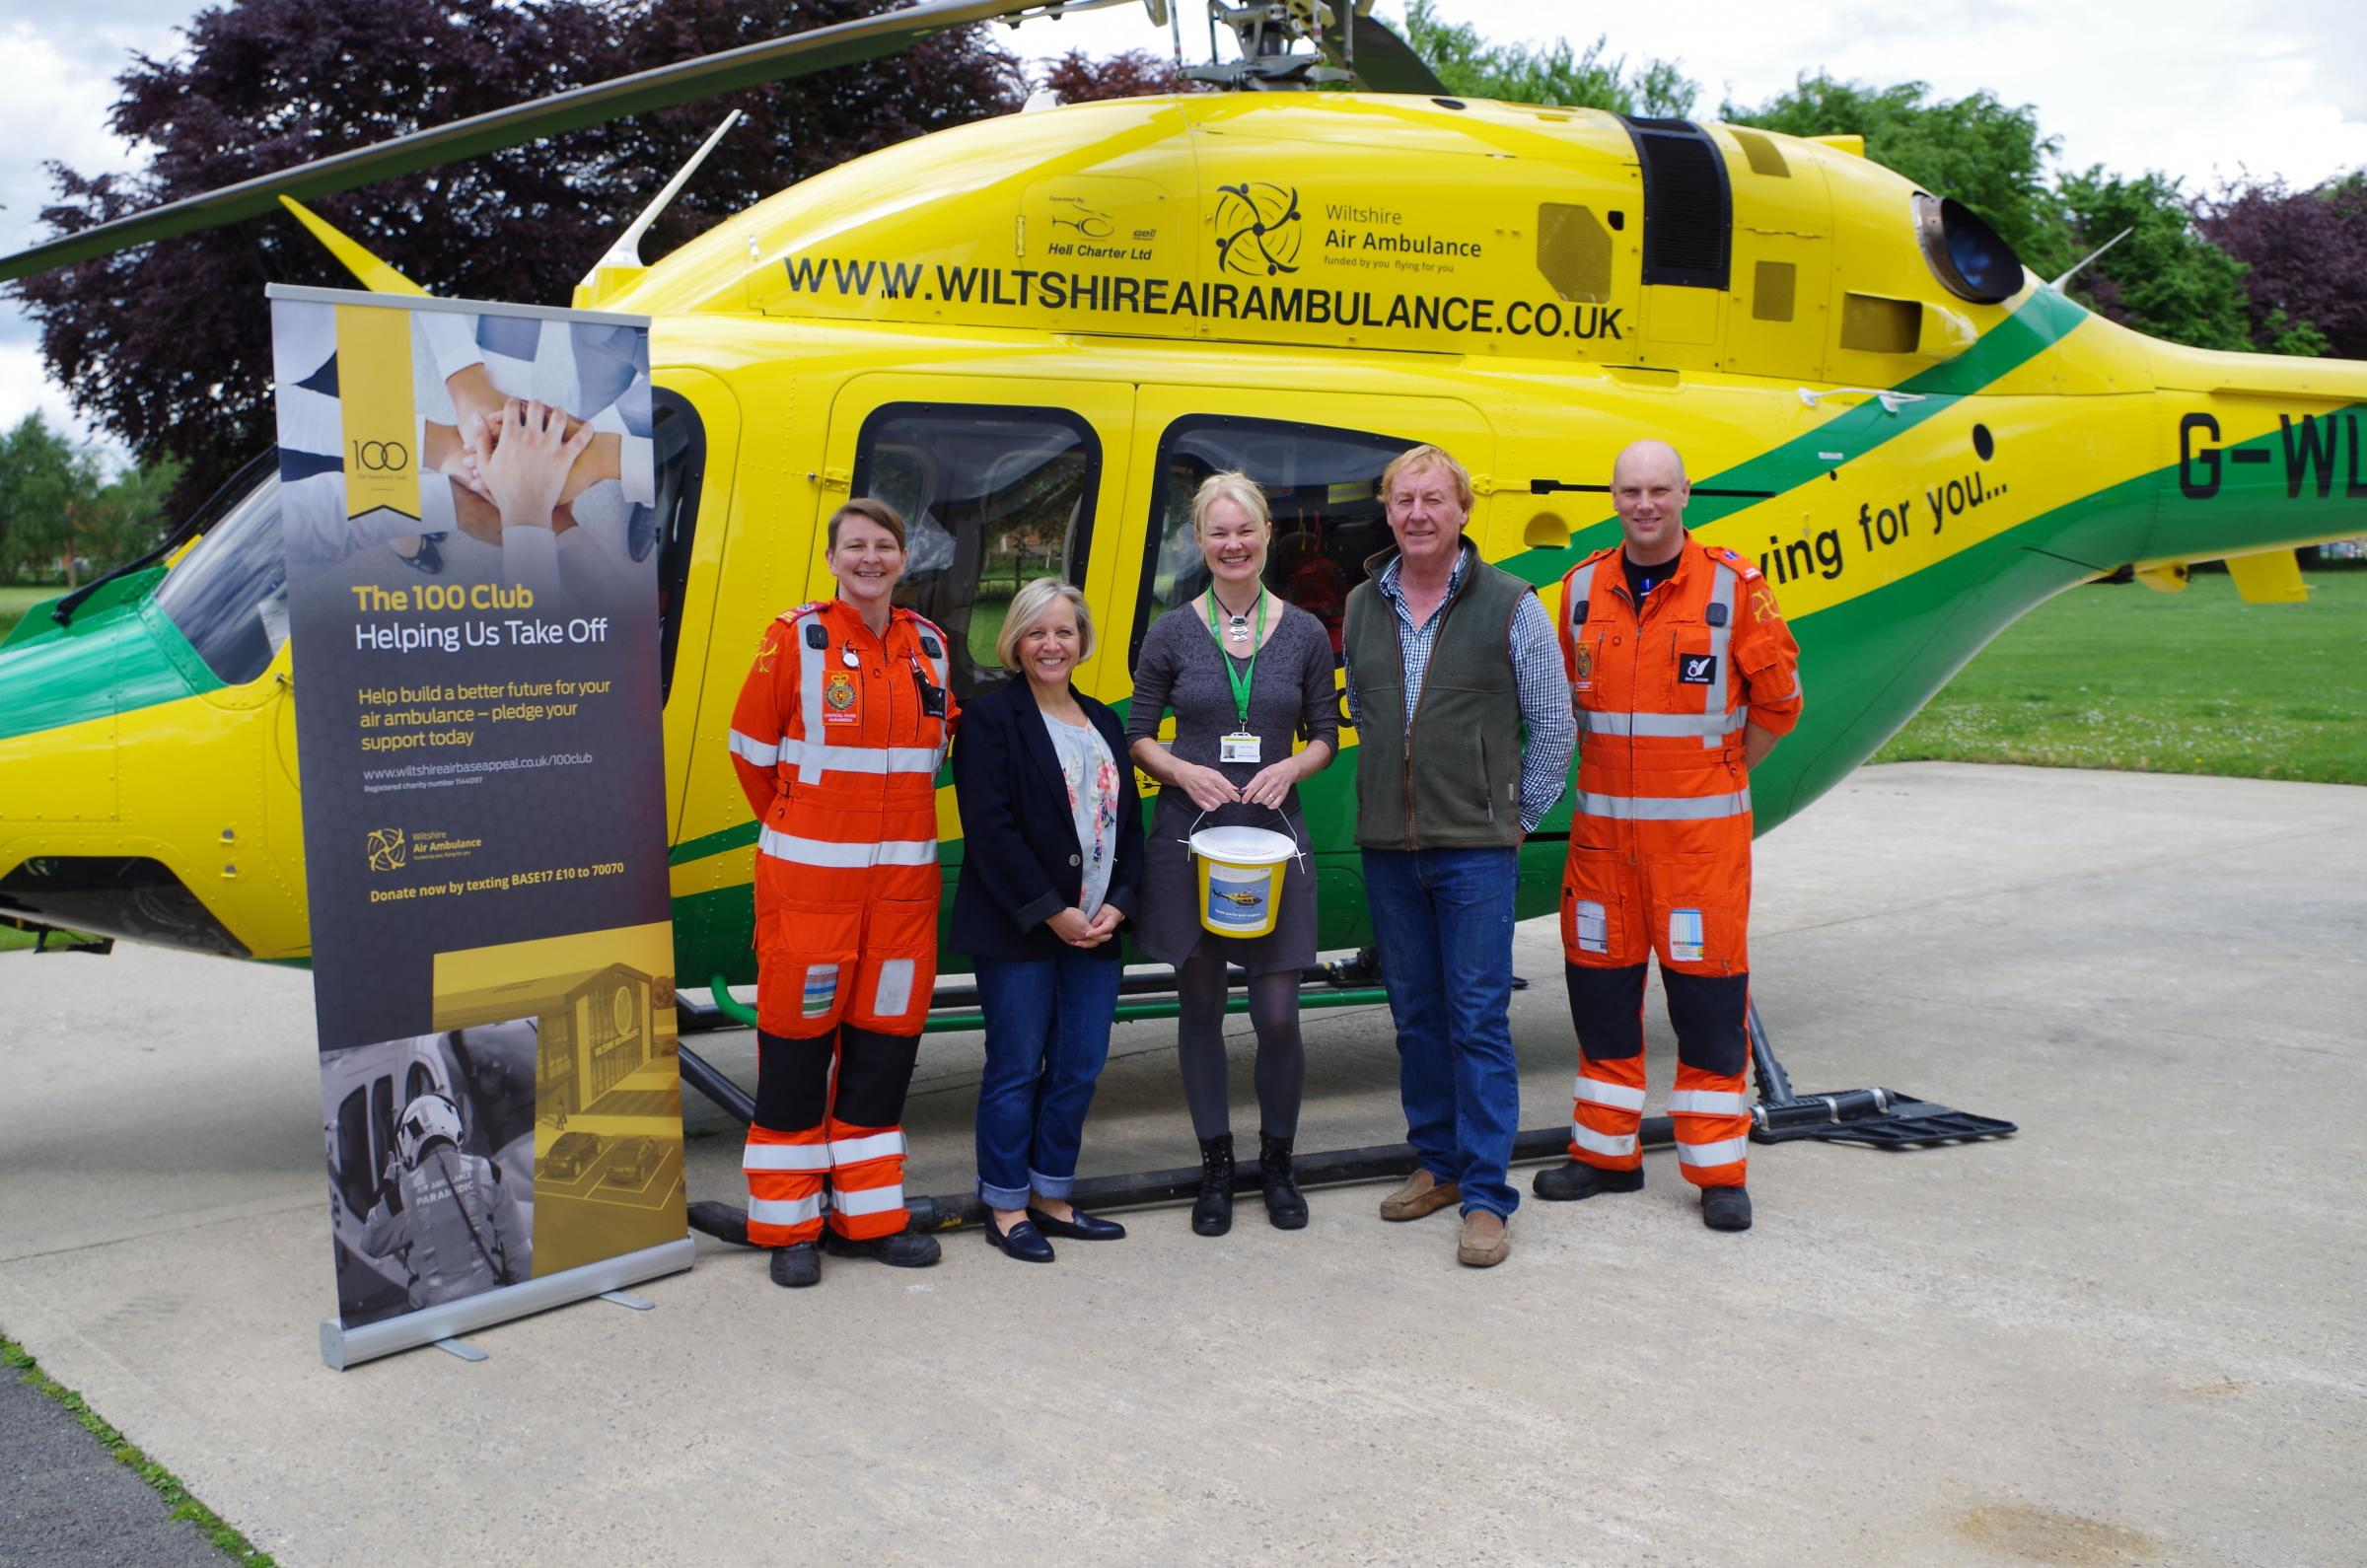 Valerie Whistler, Wiltshire Air Ambulance partnerships co-ordinator with Alison and Jonathan Sinclair, owners of Lowden Garden Centre, and WAA paramedics